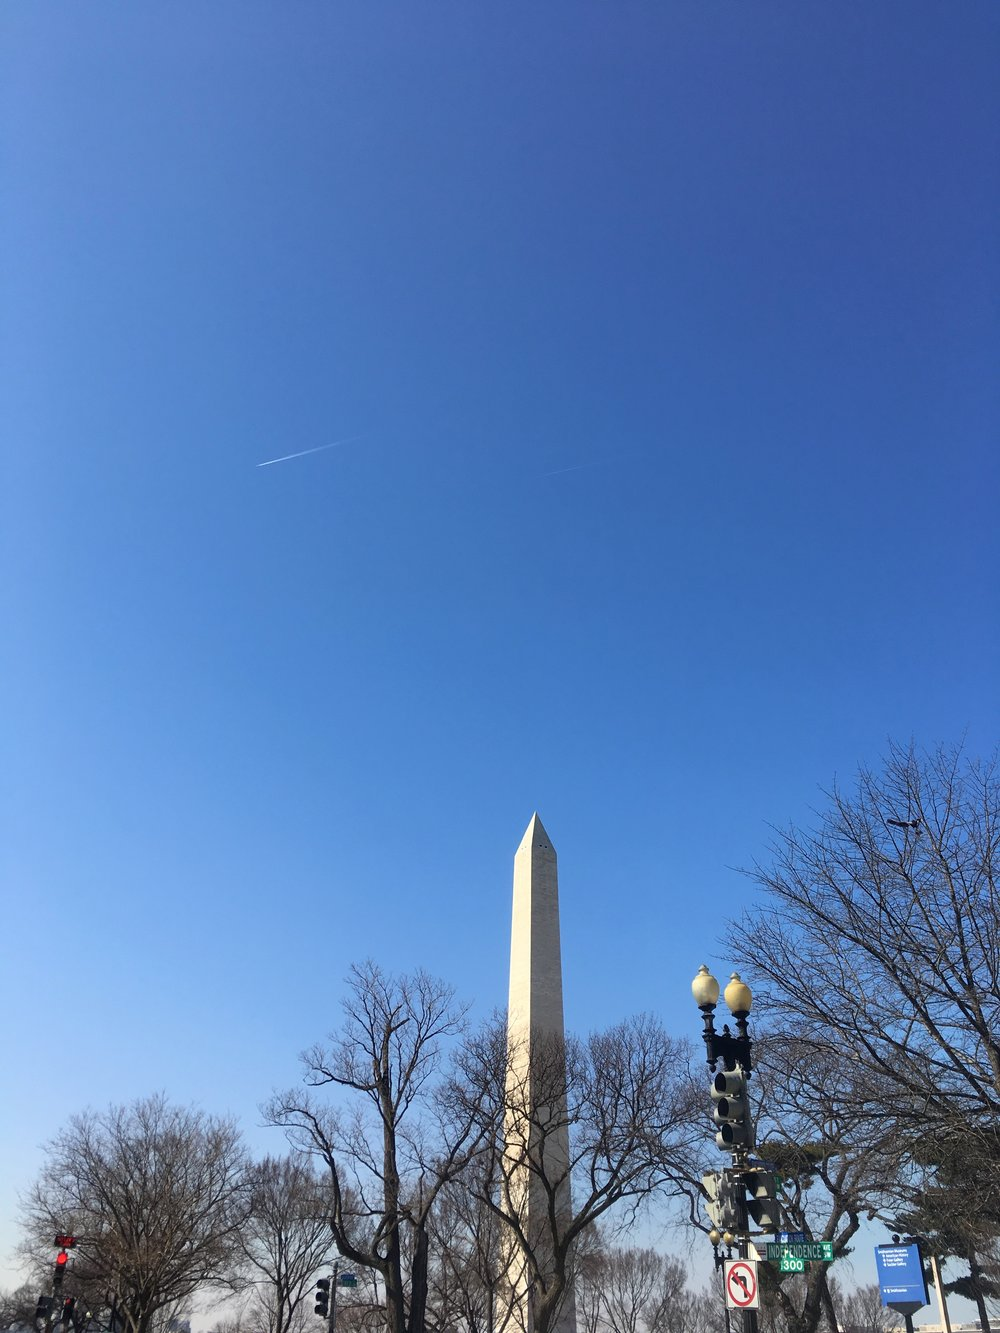 D.C. is such a neat town with SO many things to see. I'd love to go back again!